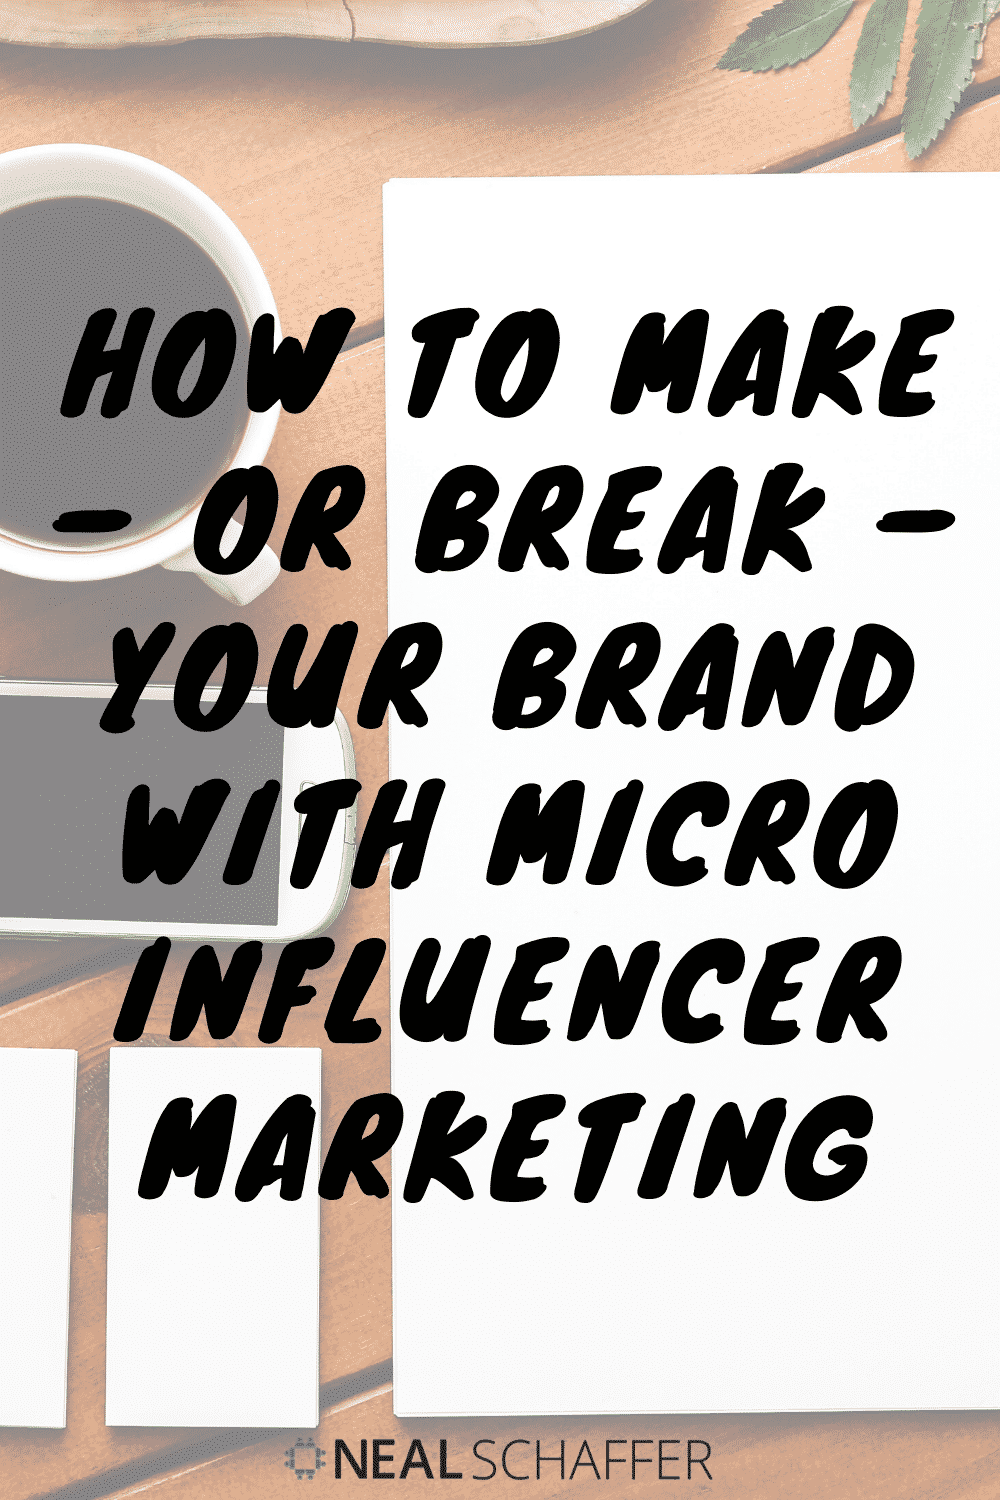 Trying to figure out micro influencer marketing? Learn how micro-influencers can make - or break - your brand and how to best leverage them.